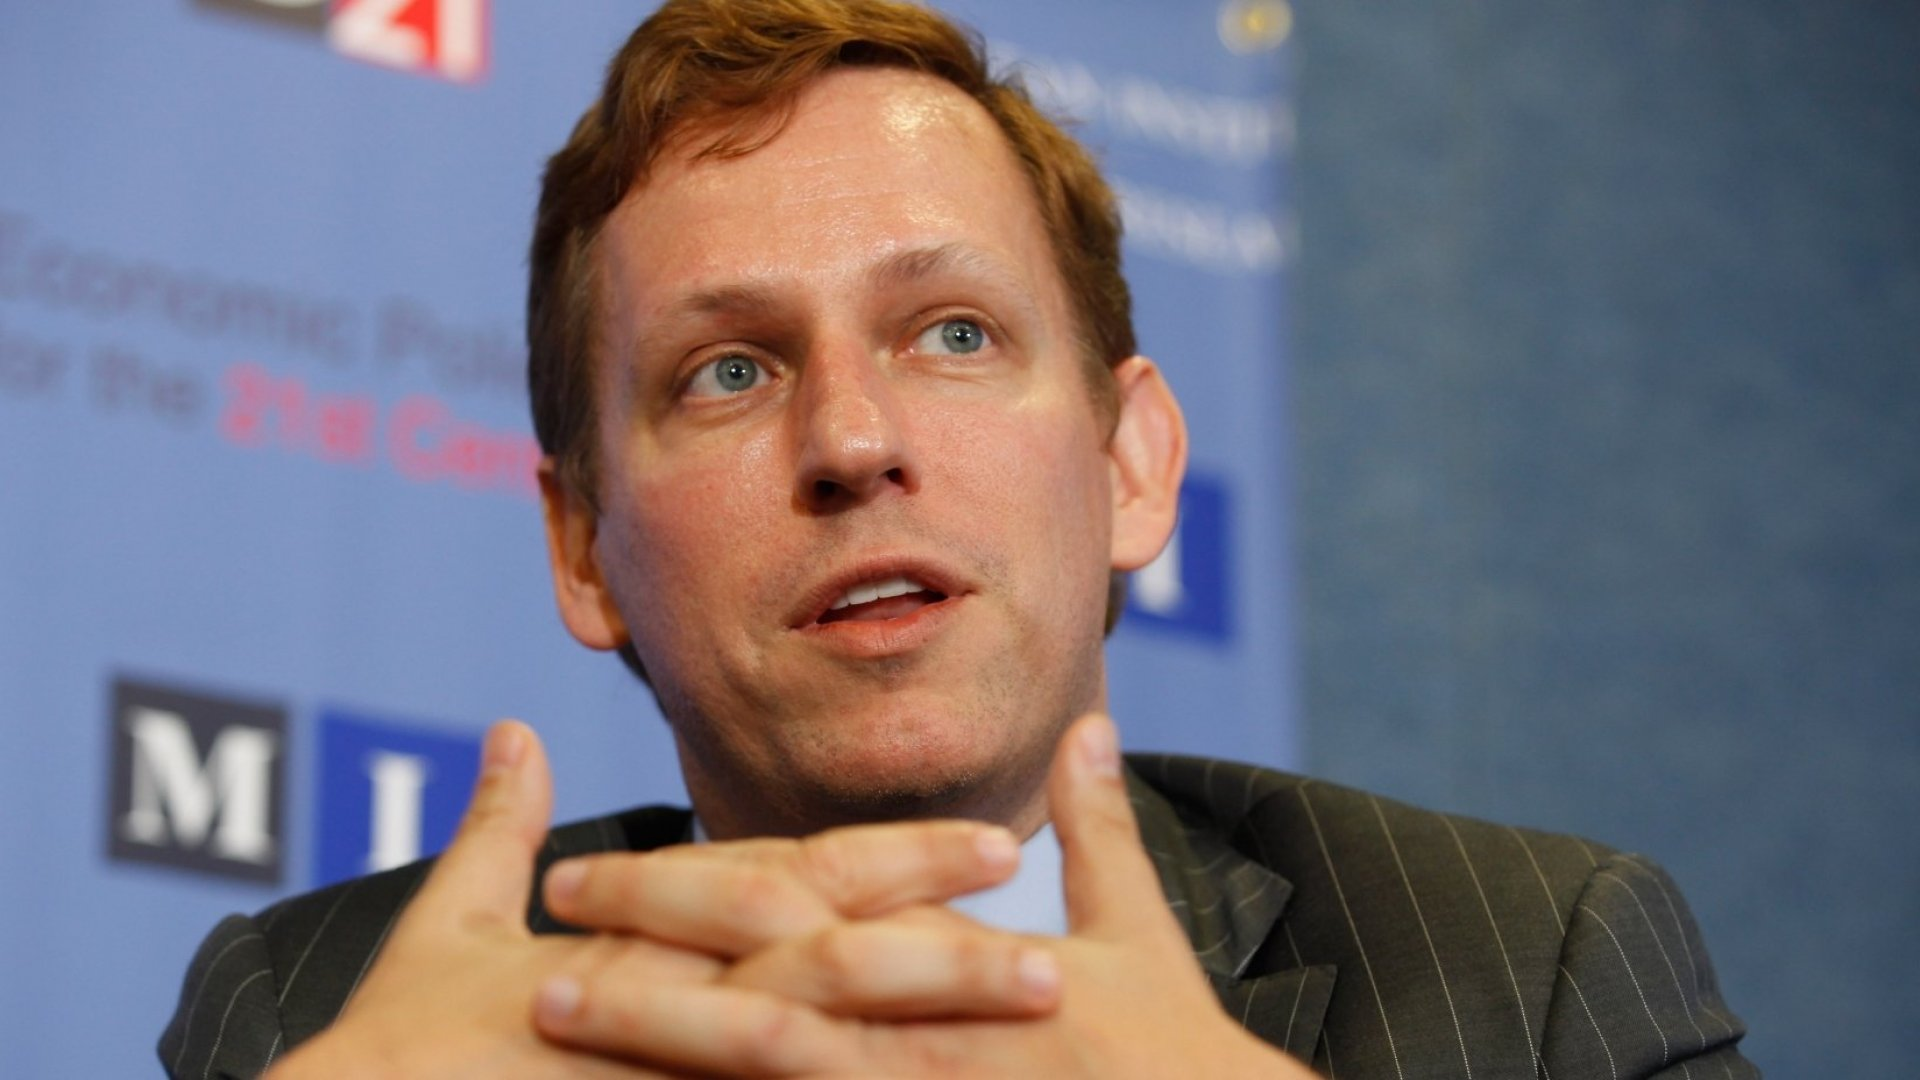 A Crazy Yet Plausible Theory About Why Peter Thiel Supports Donald Trump